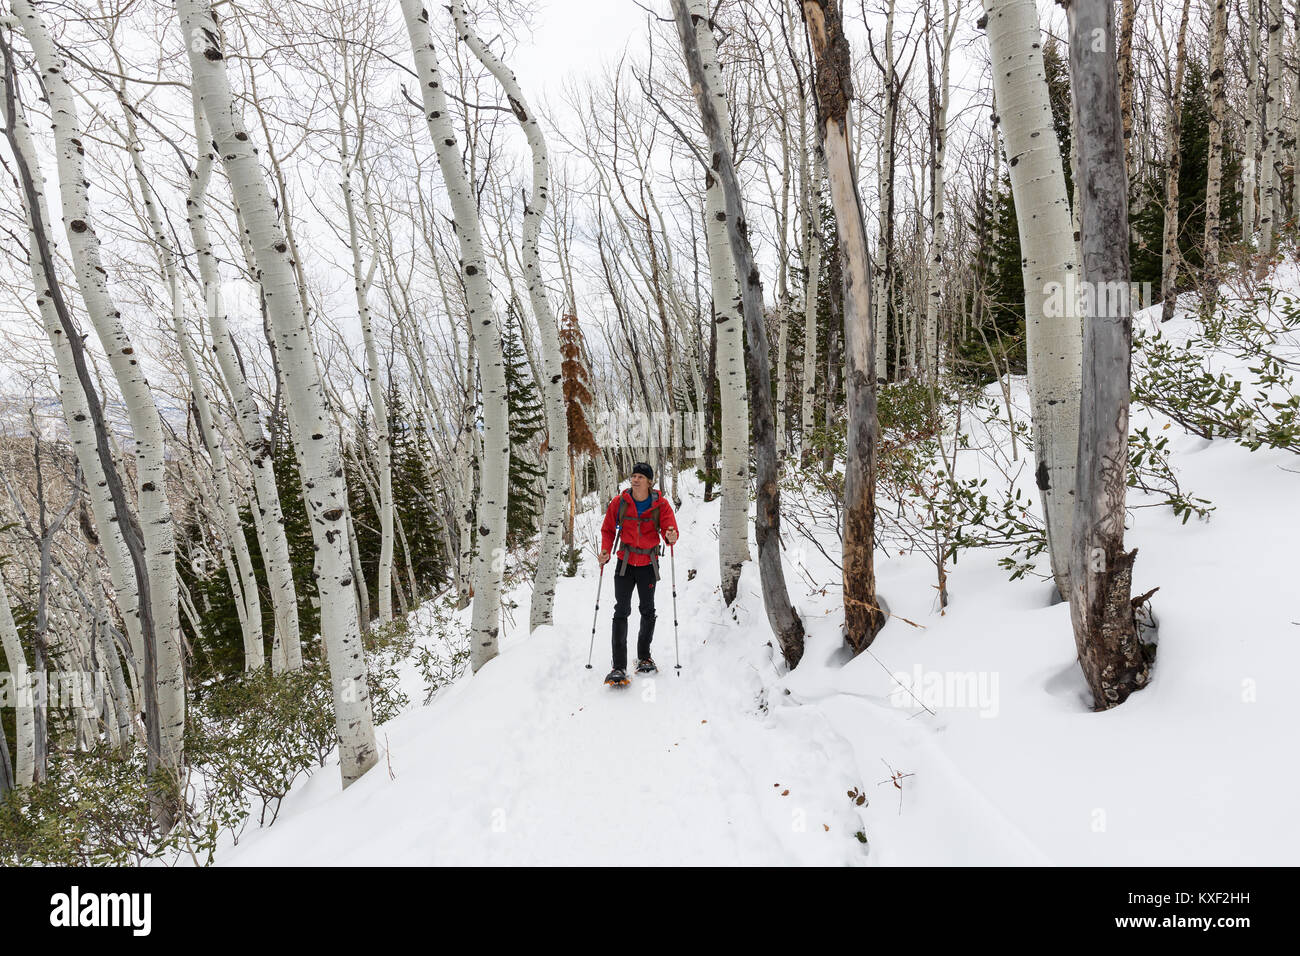 95cde19c1 A hiker snowshoes along Rob's Trail surrounded by beautiful winter ...